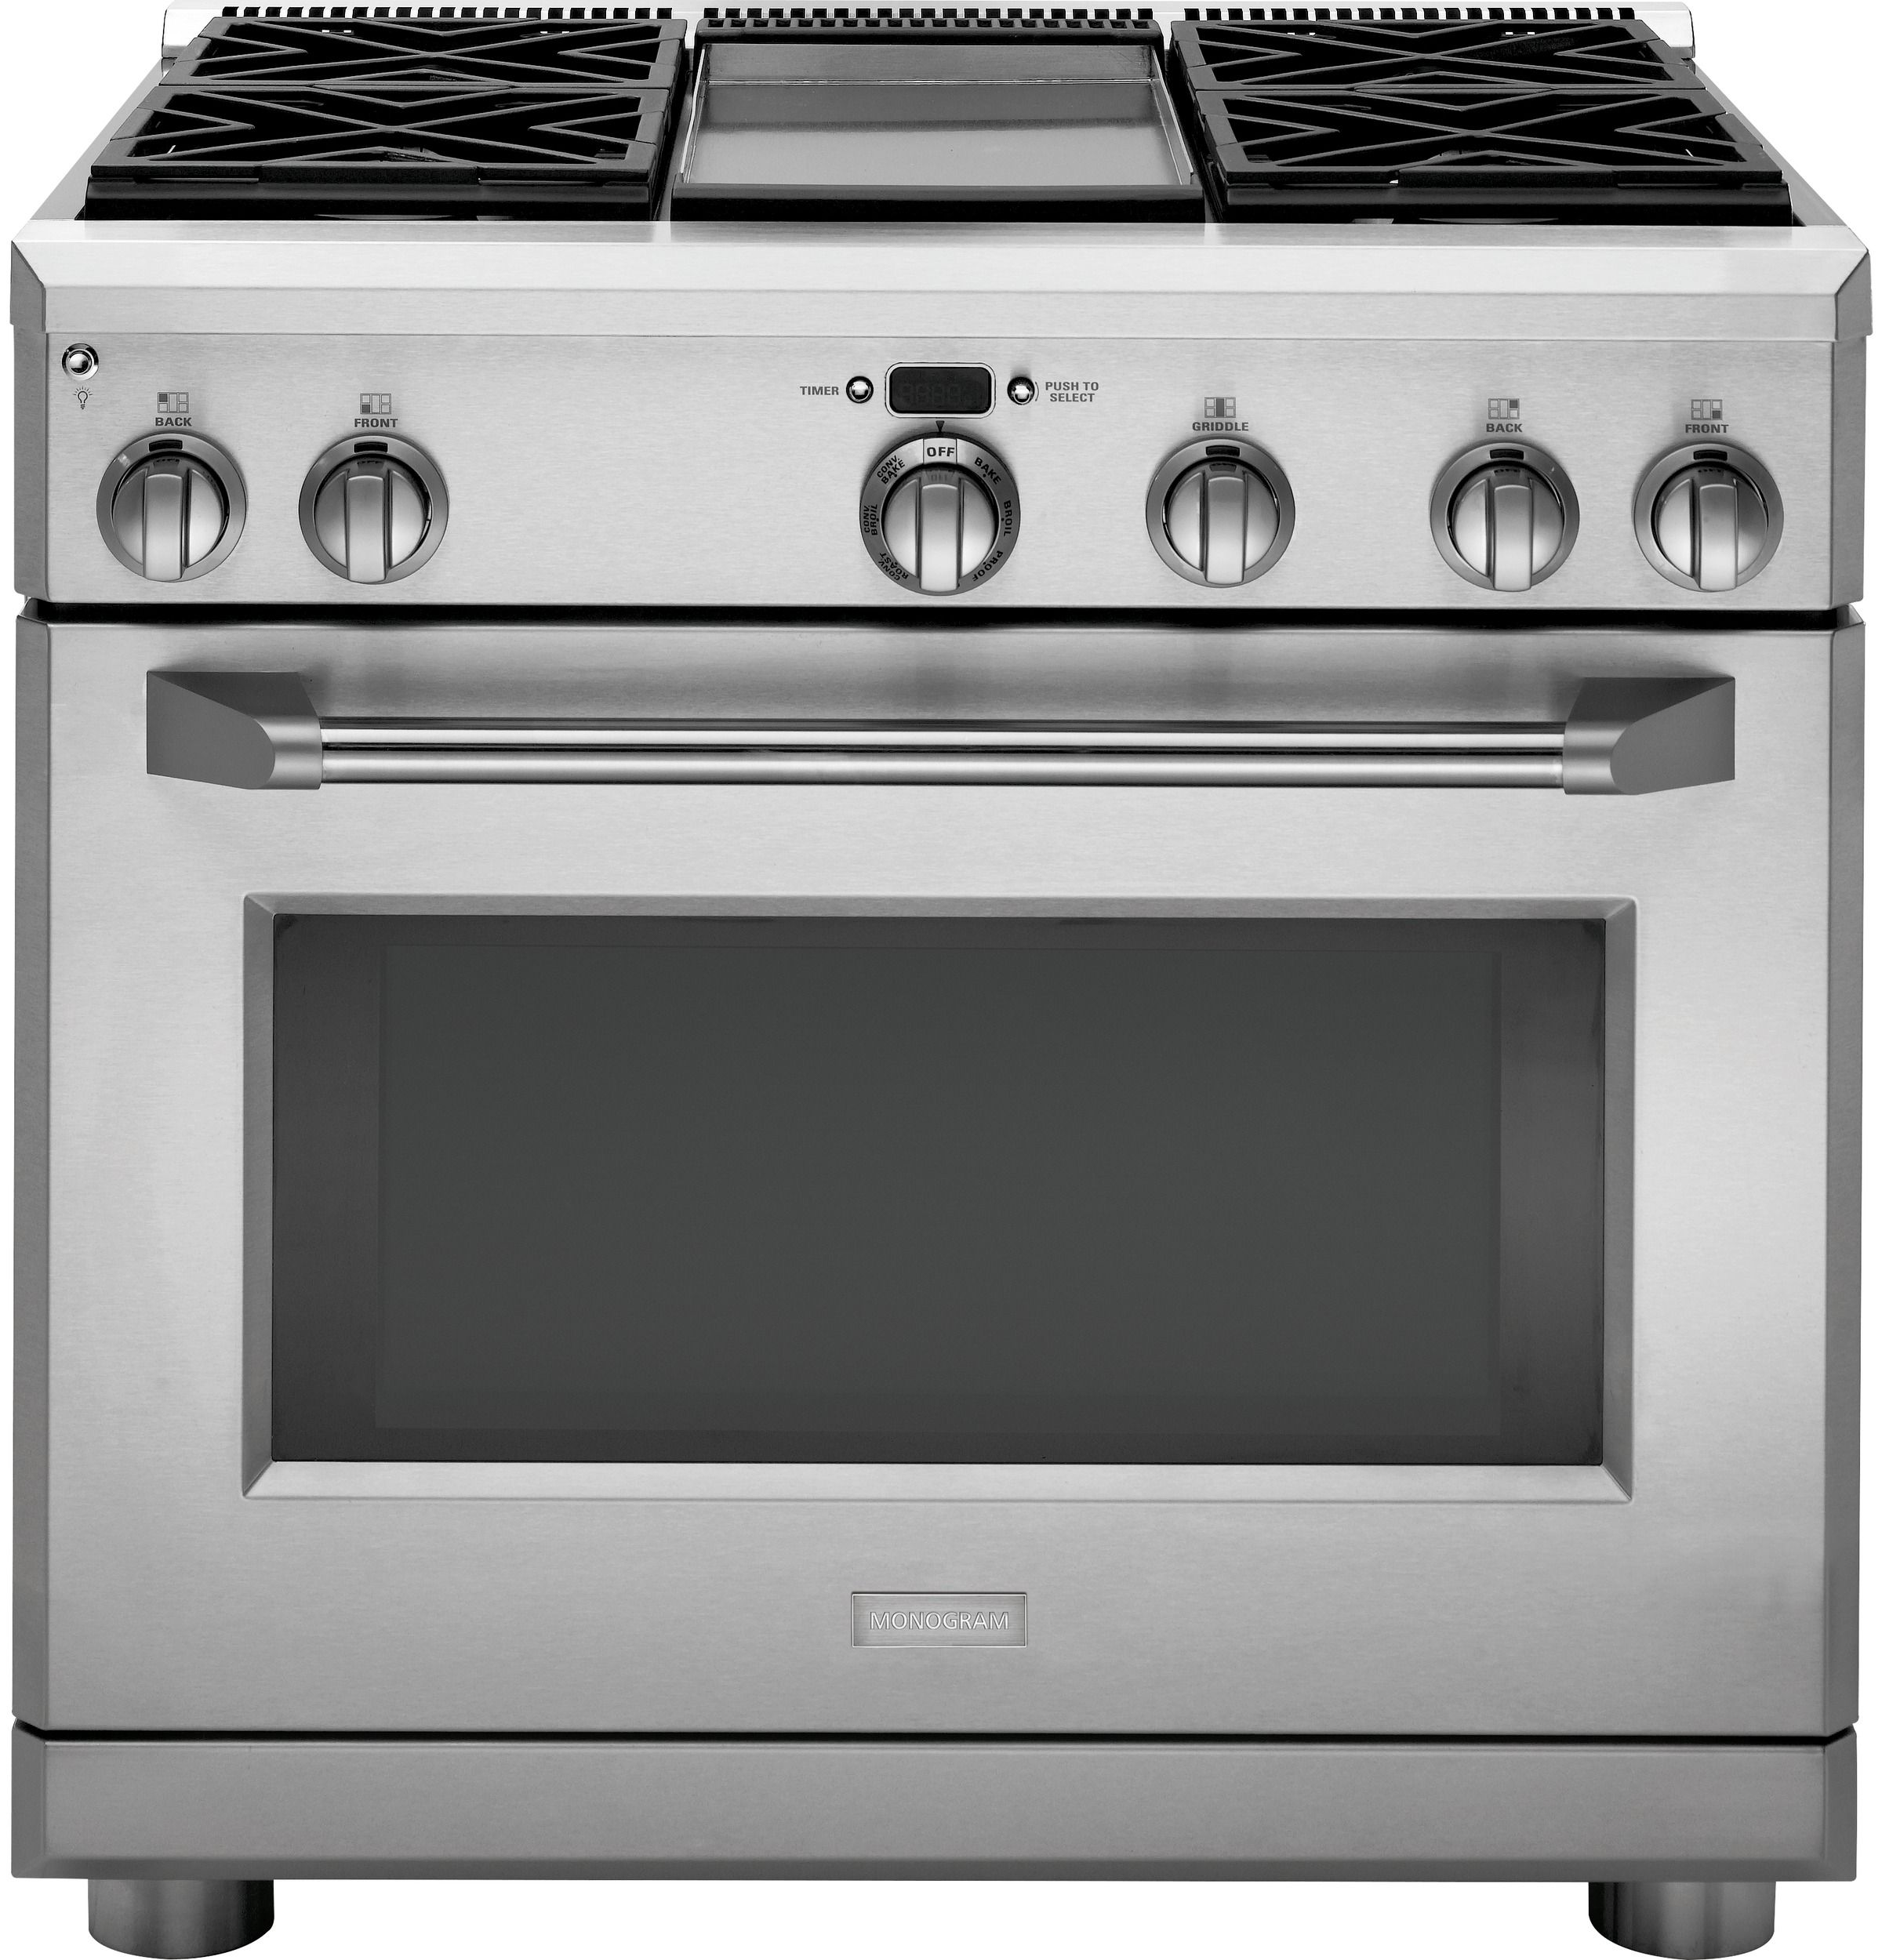 Zdp364ndpss Ge Monogram 36 Dual Fuel Professional Range With 4 Burners And Griddle Natural Gas Monogram Appliances Convection Range Dual Fuel Ranges